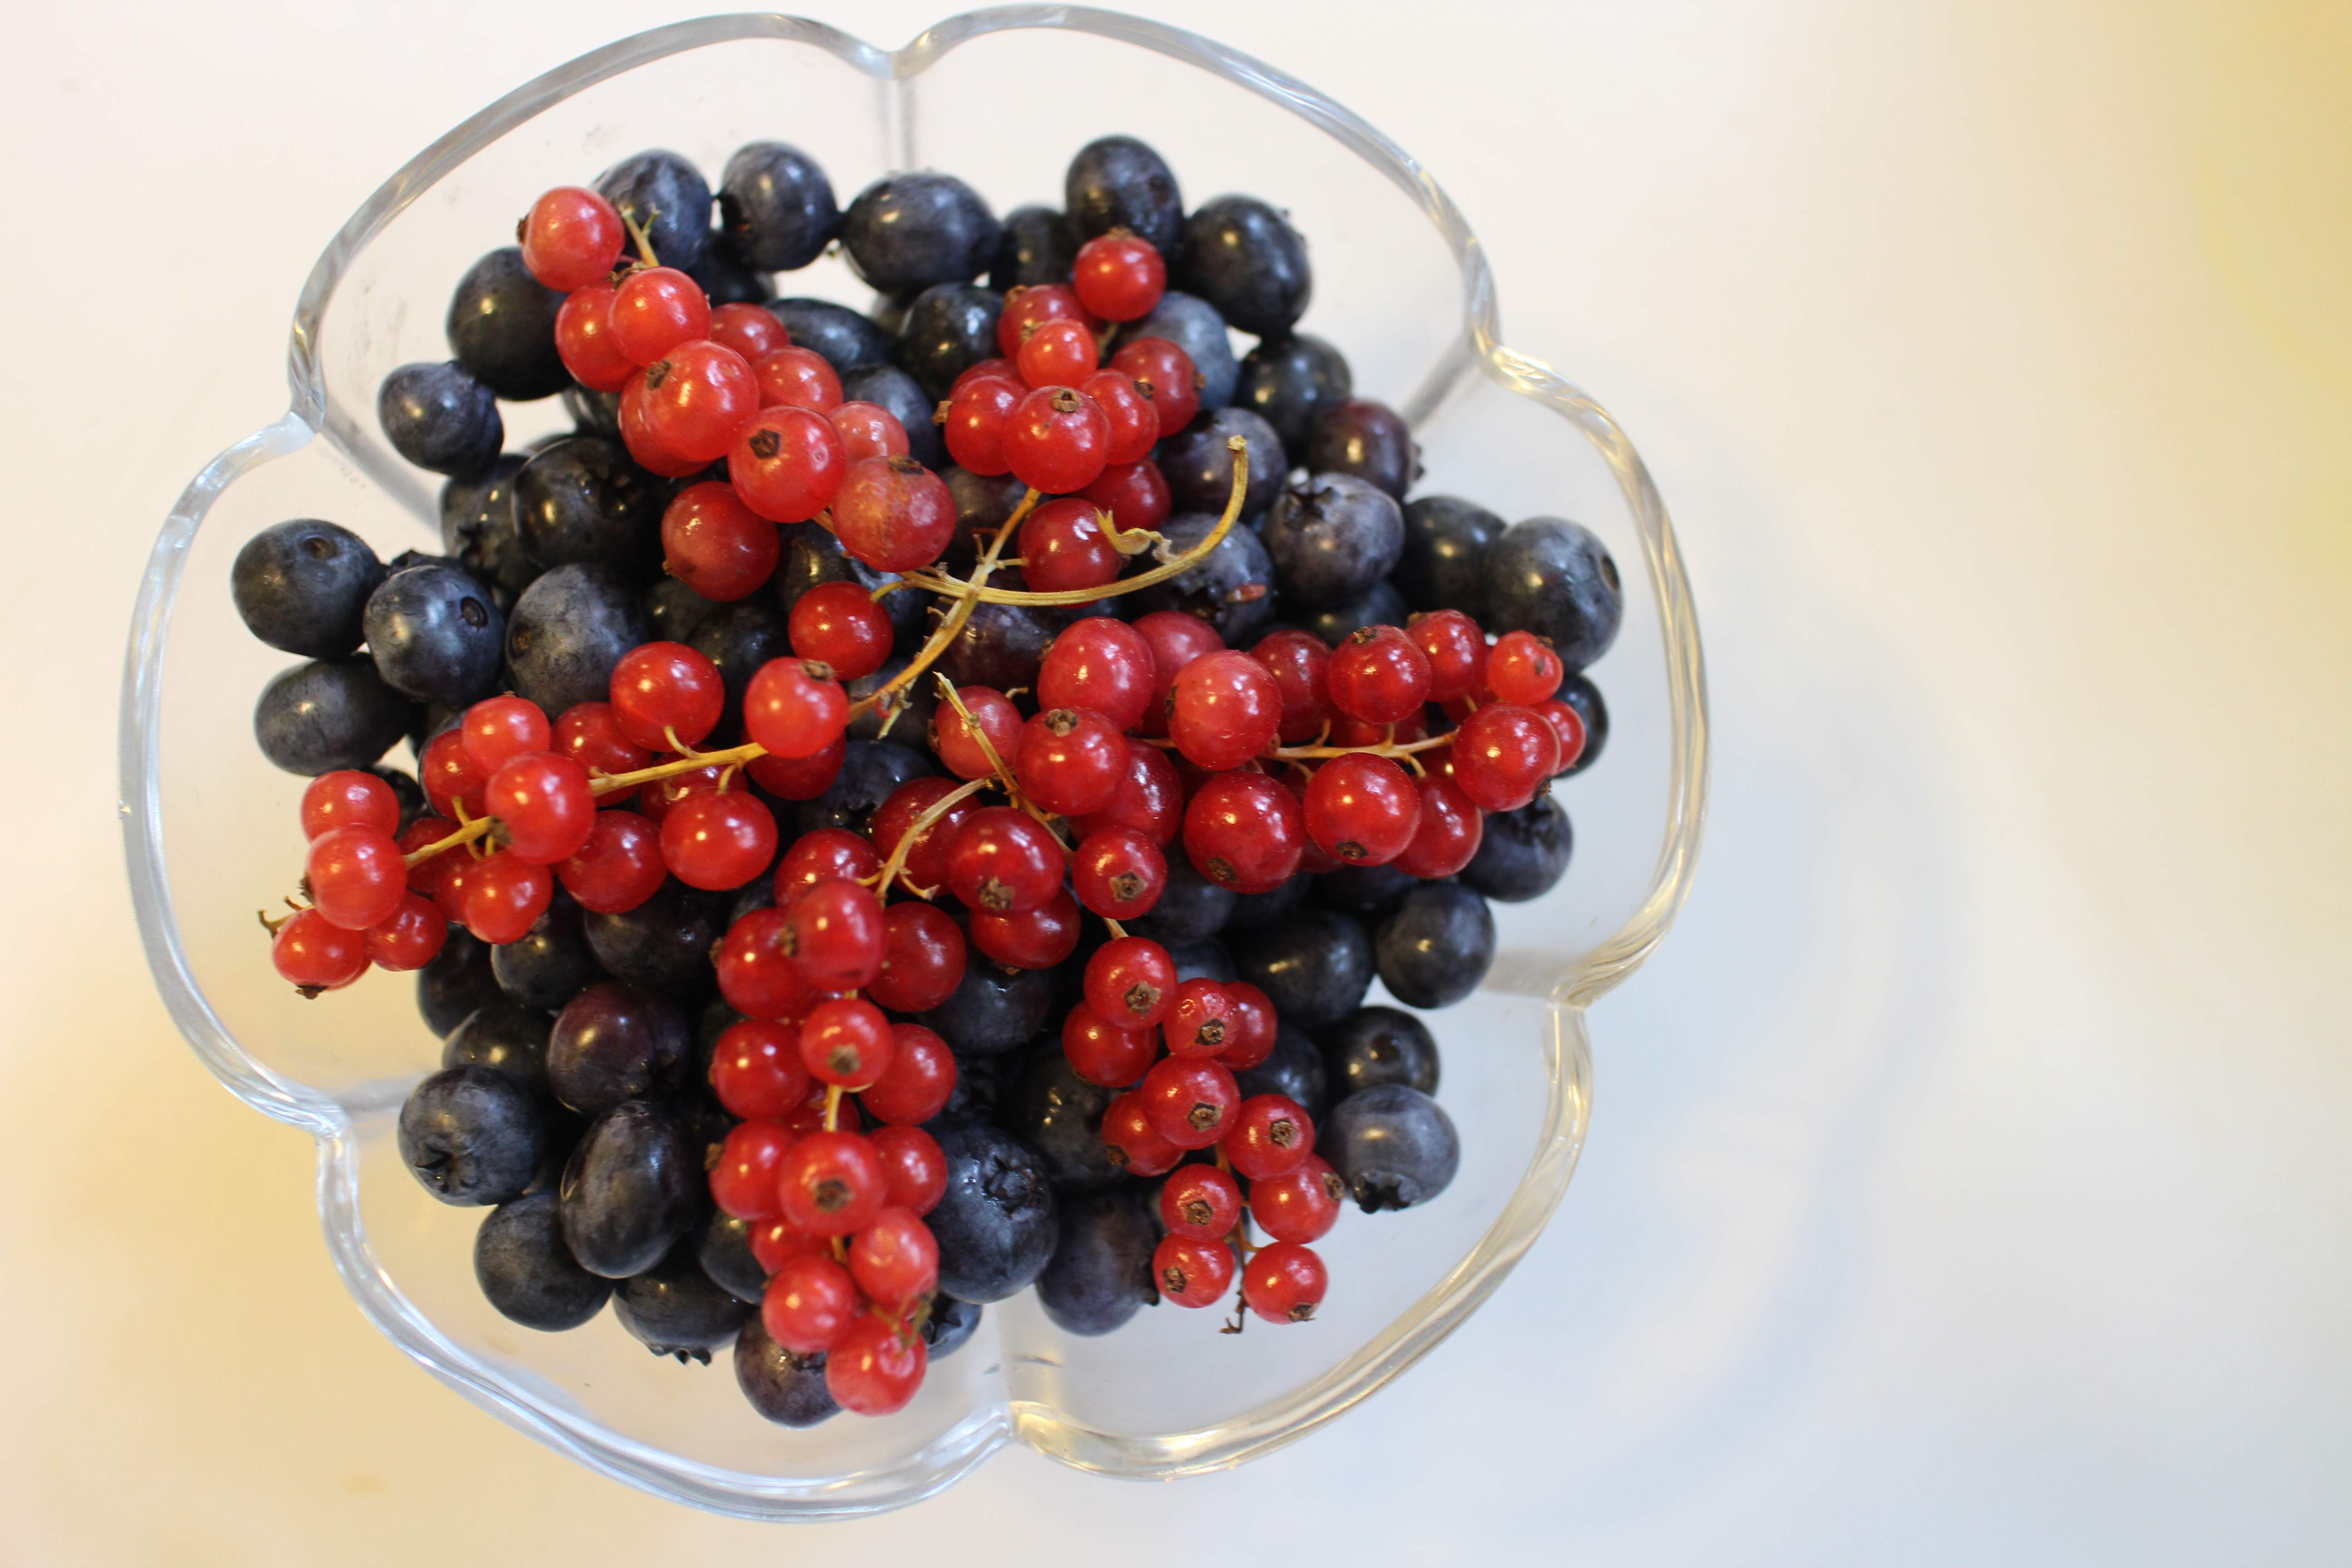 Black and Red Currants 1774.72 Kb